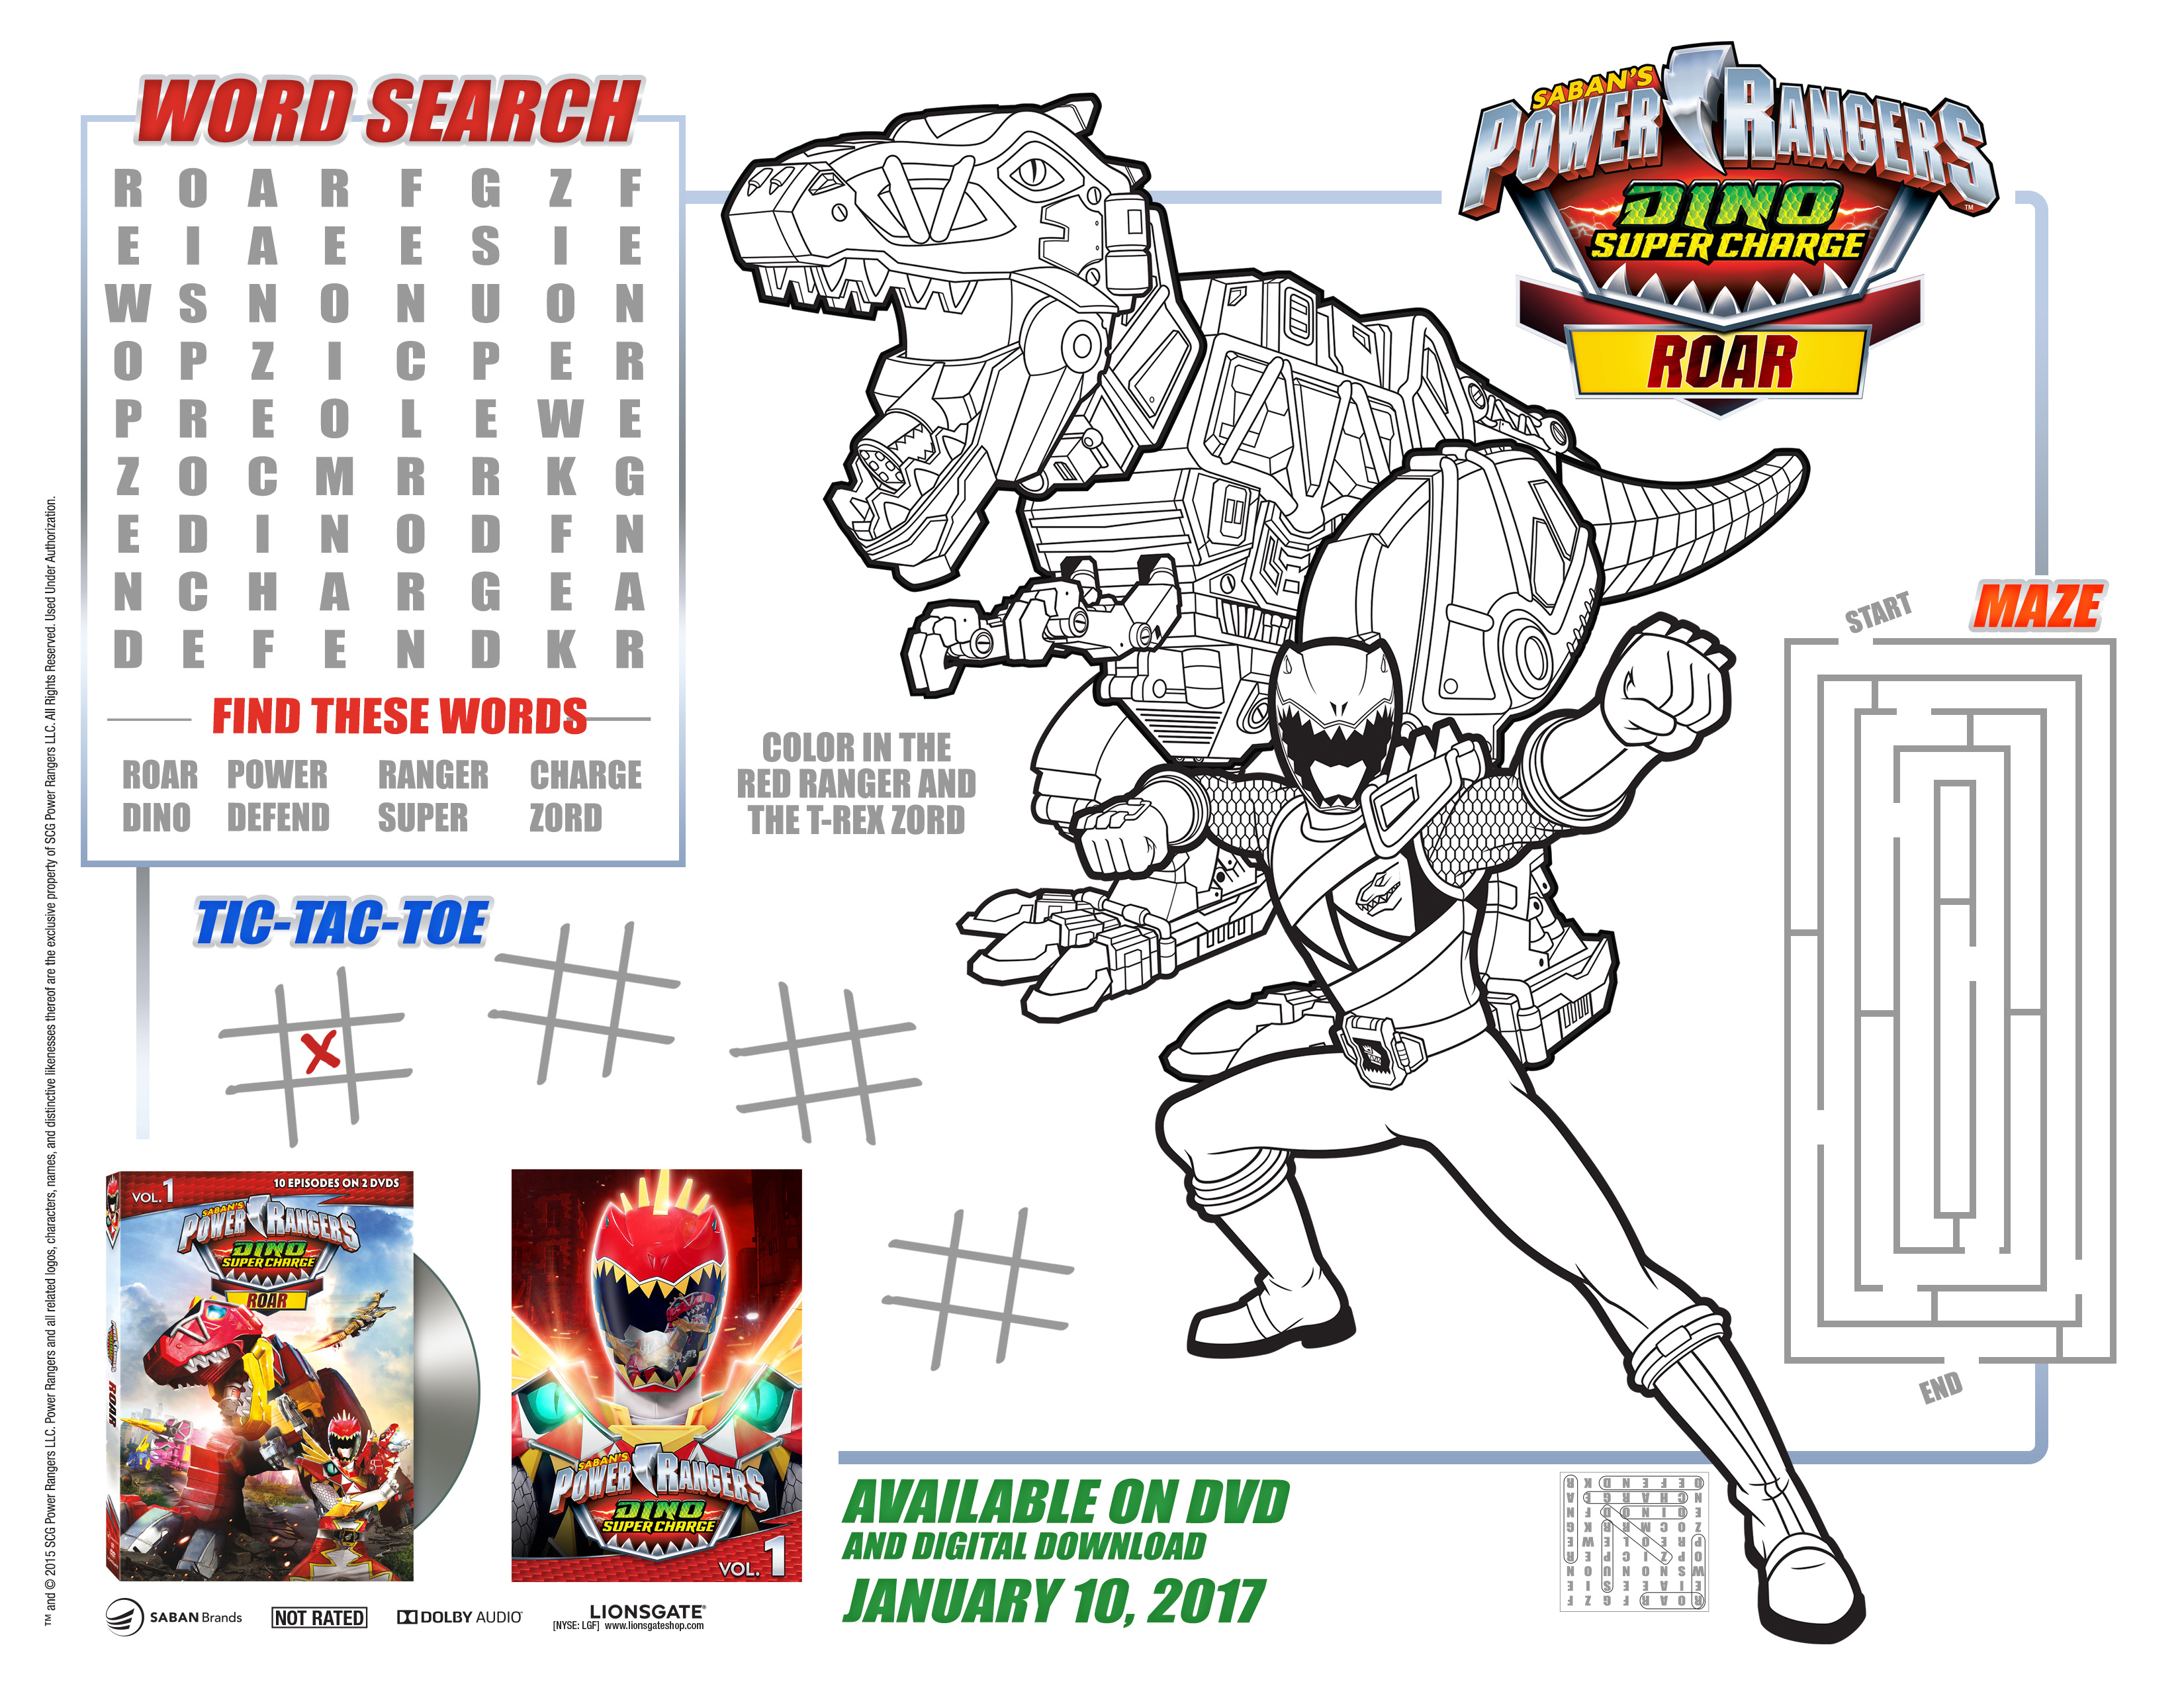 Power Rangers Dino Supercharge Dvd Roar Releases Today